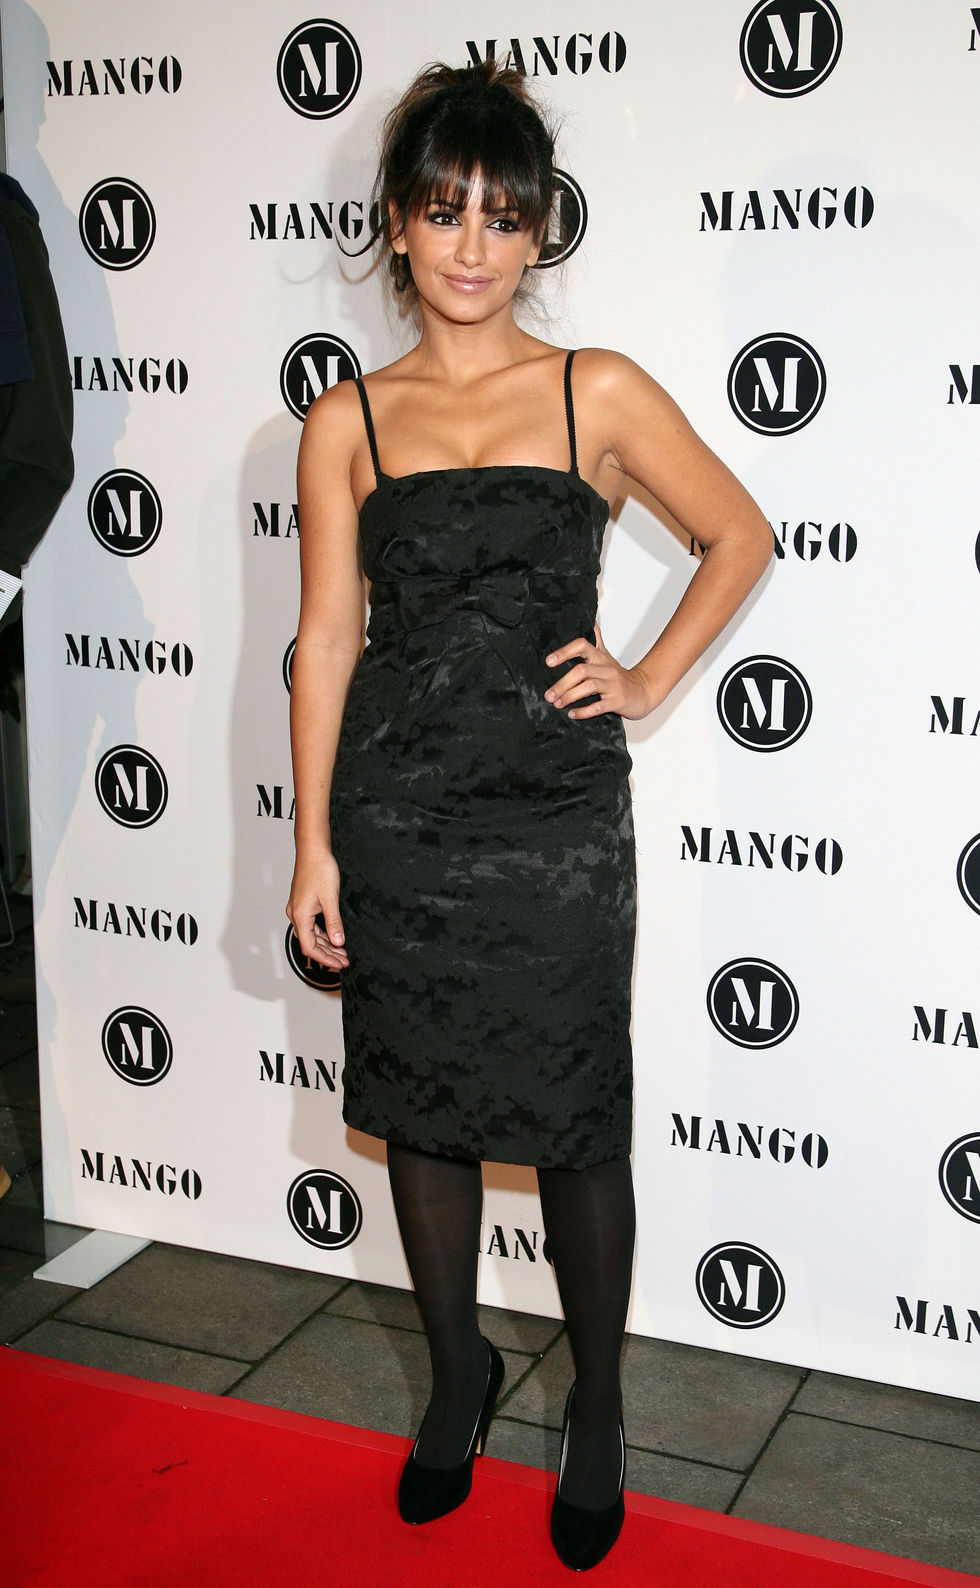 monica-cruz-he-by-mango-men-collection-presentation-in-munich-01